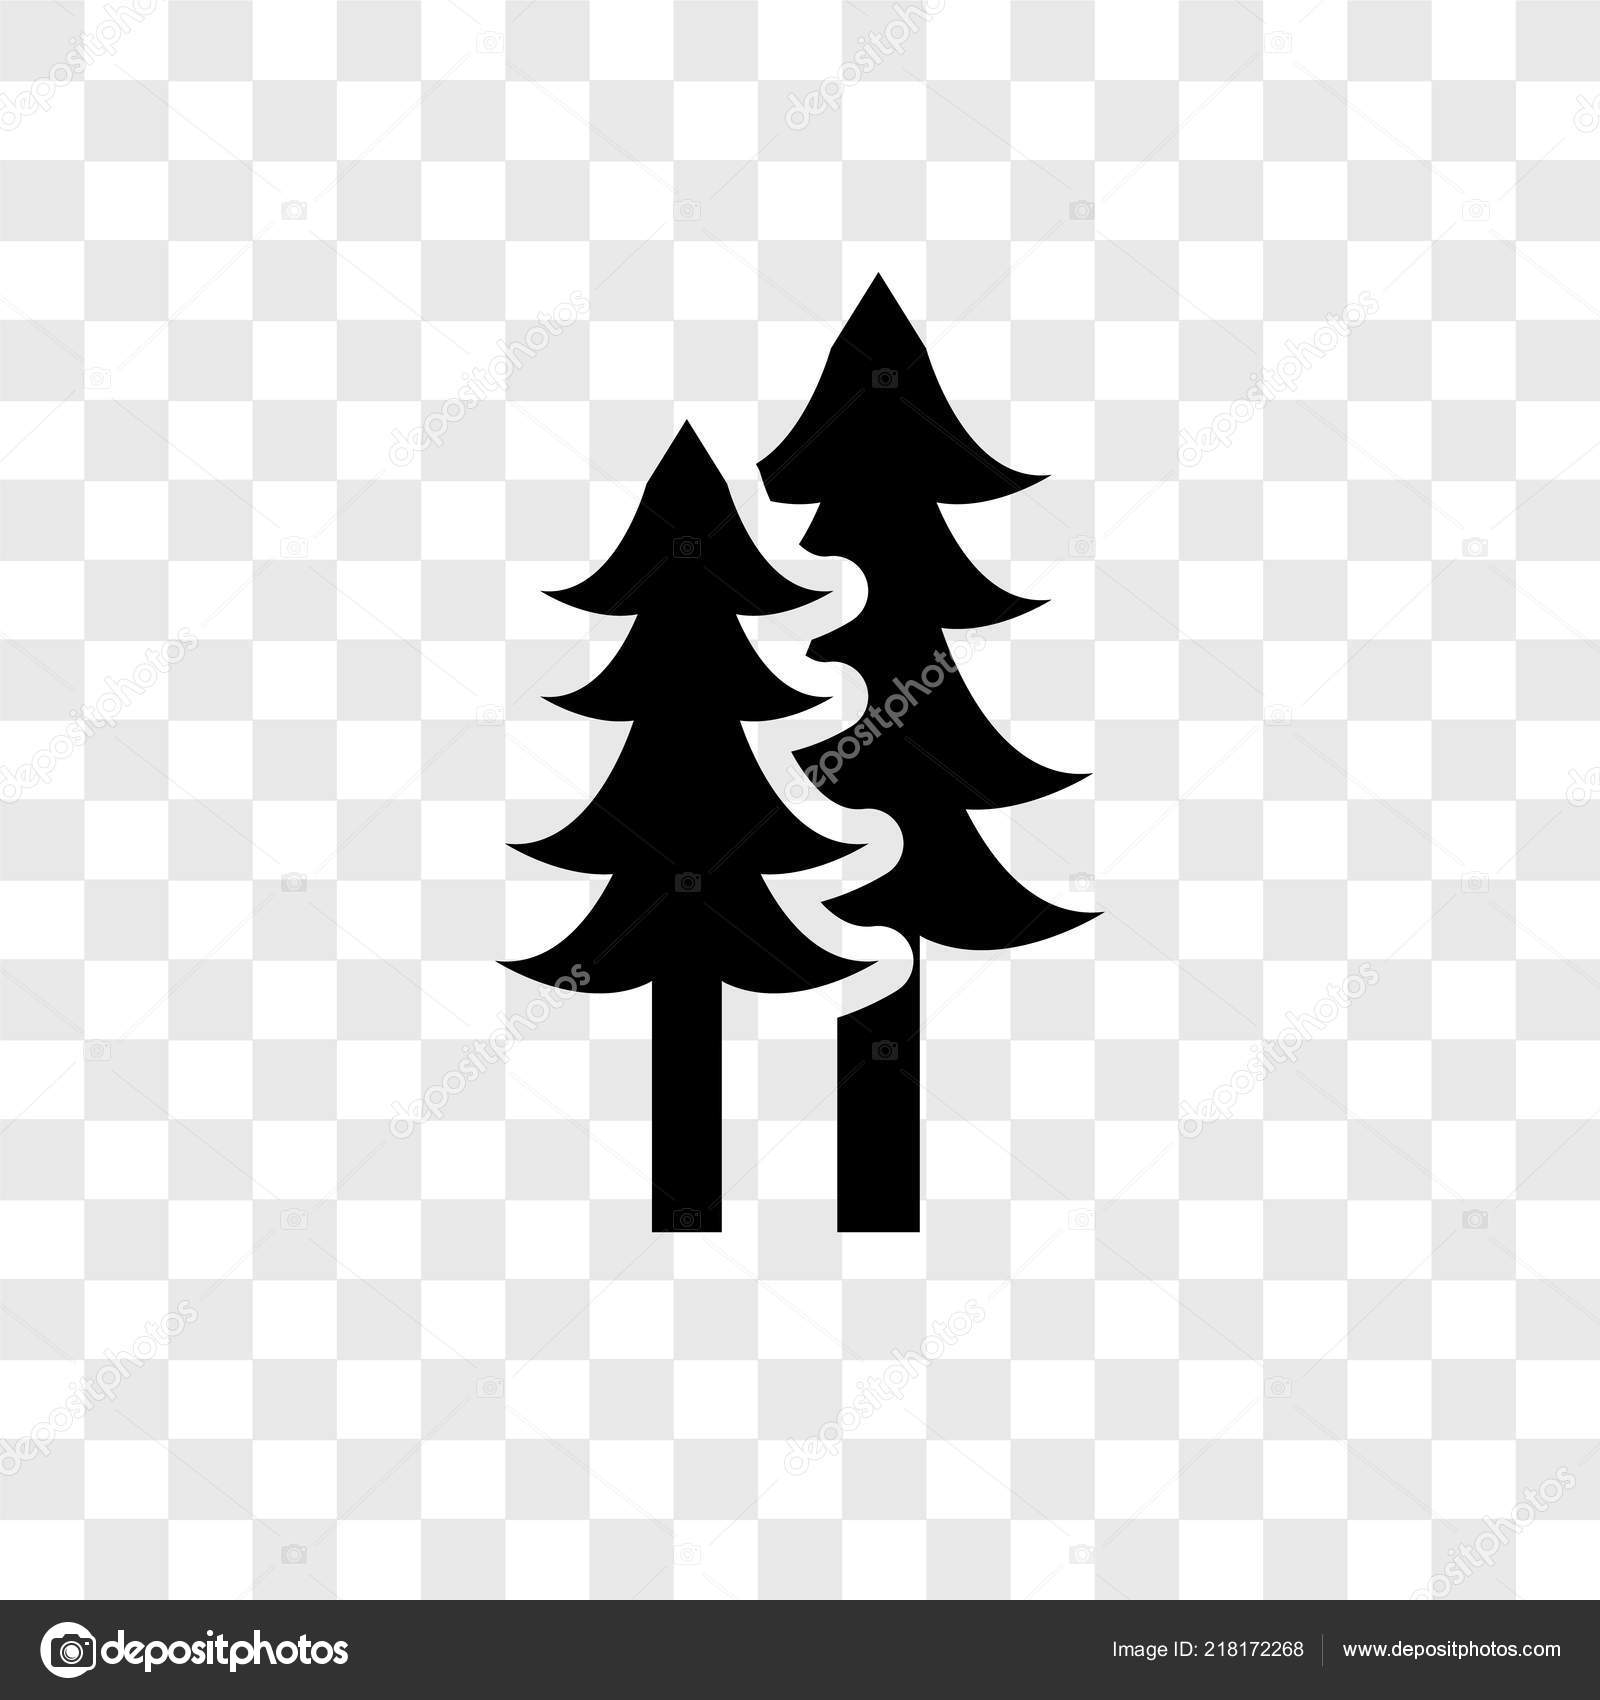 christmas trees vector icon isolated transparent background christmas trees transparency stock vector c topvectorstock 218172268 https depositphotos com 218172268 stock illustration christmas trees vector icon isolated html